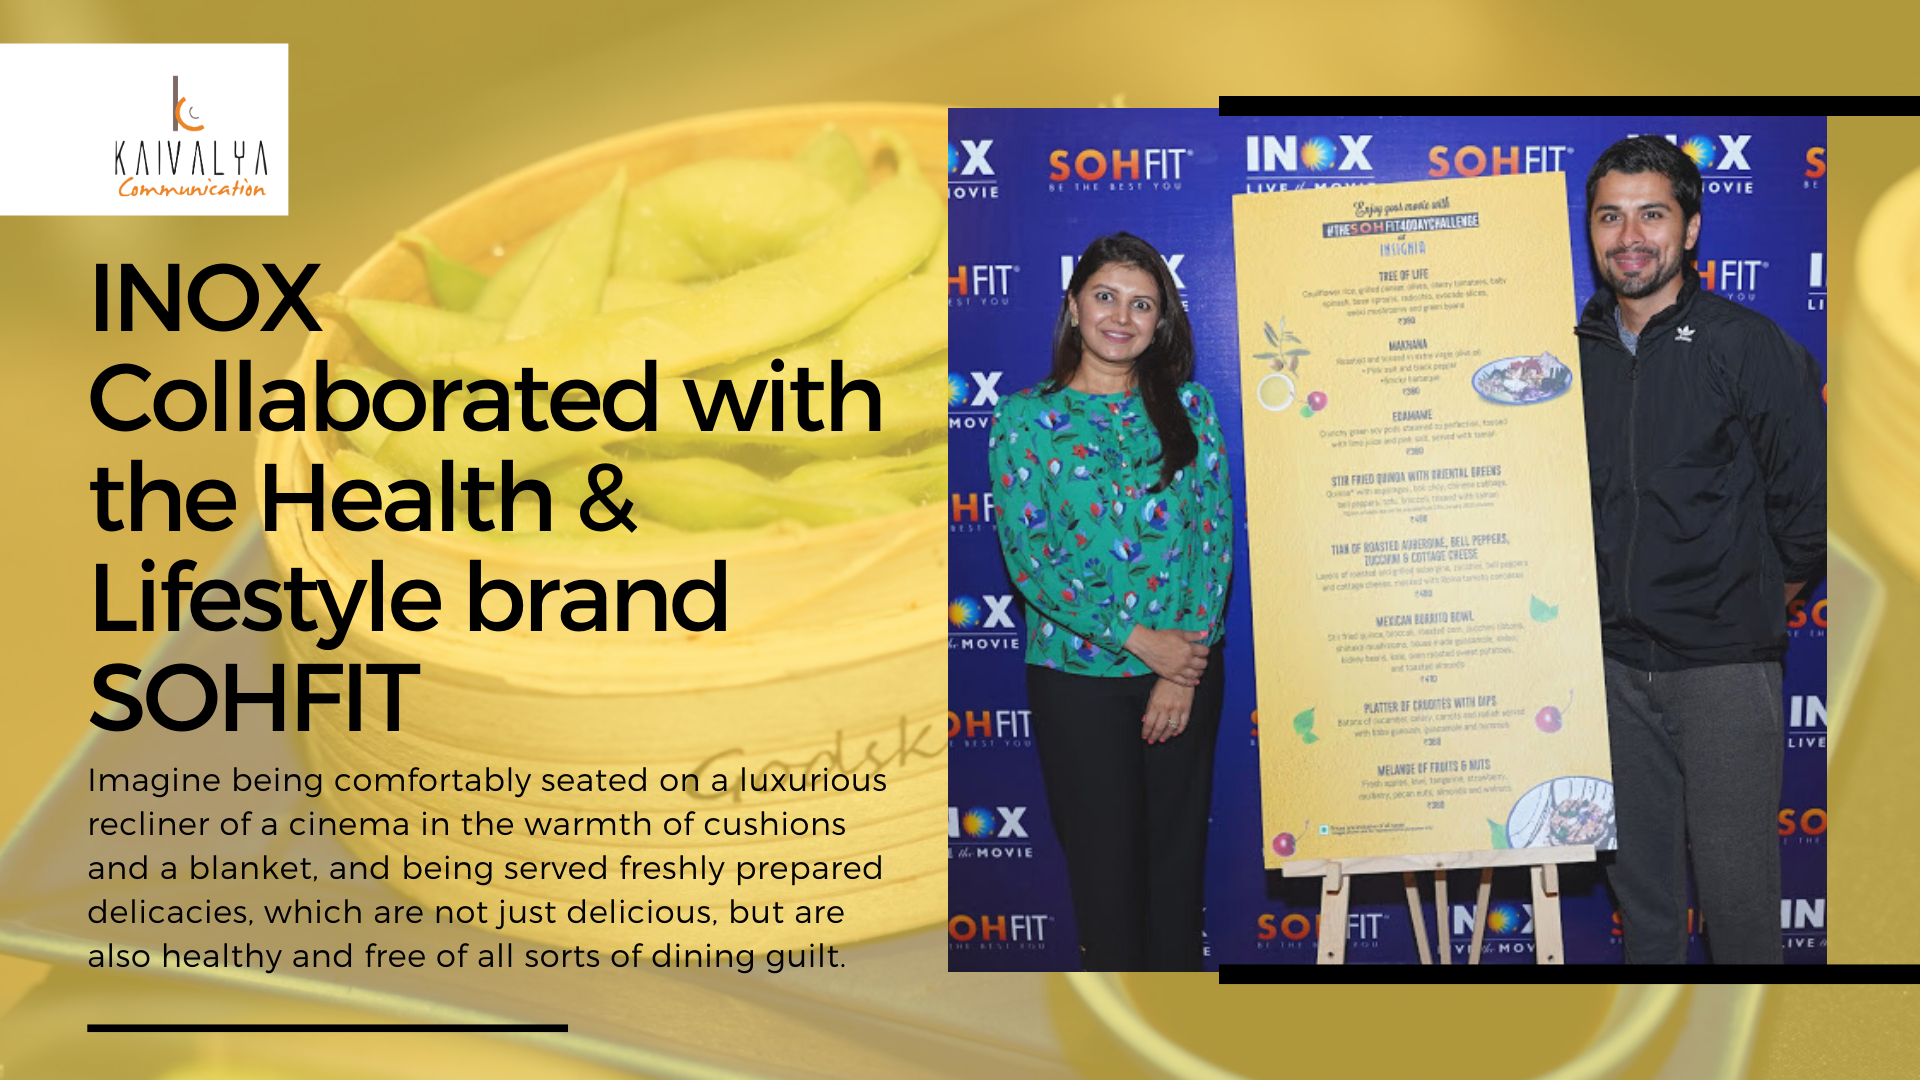 INOX Collaborated with the Health & Lifestyle brand SOHFIT